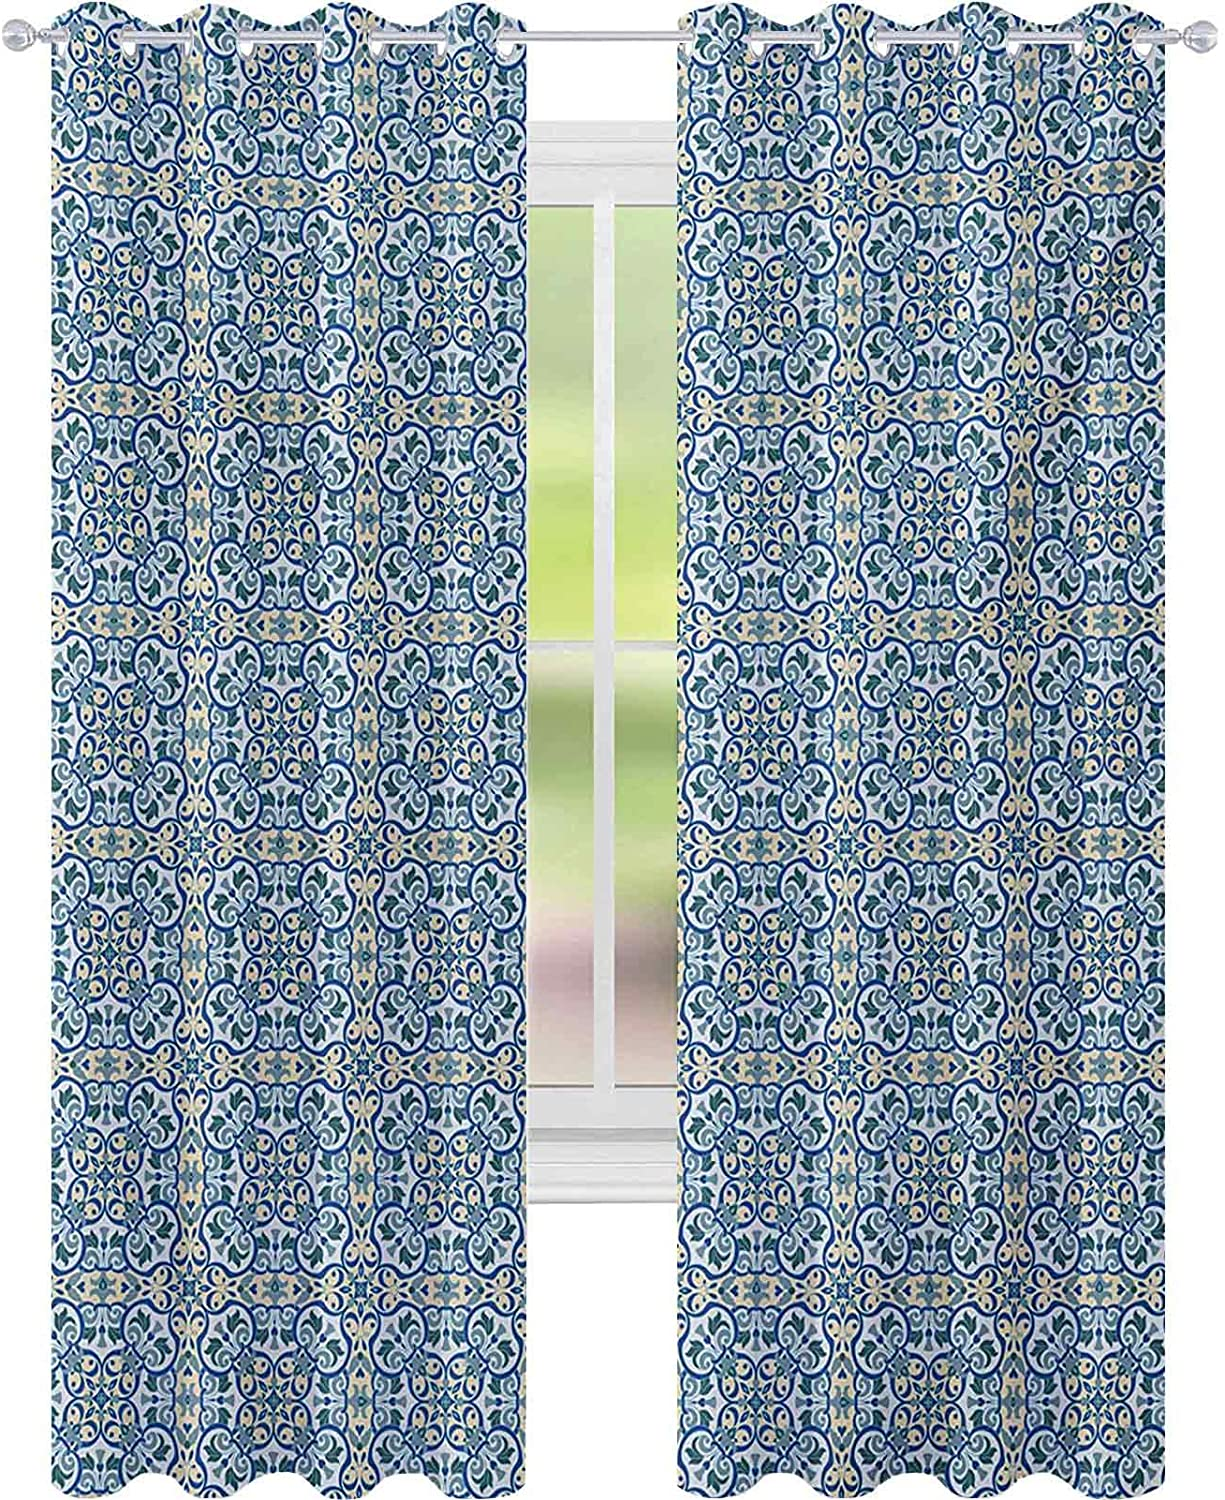 CURTAINS FOR BEDROOM CURVY CIRCULAR REPEATING FLORAL MOTIFS ABSTRACT HAND TILE PATTERN W52 X L84 CURTAINS FOR BABY NURSERY ROOM BLUE BABY BLUE GREEN